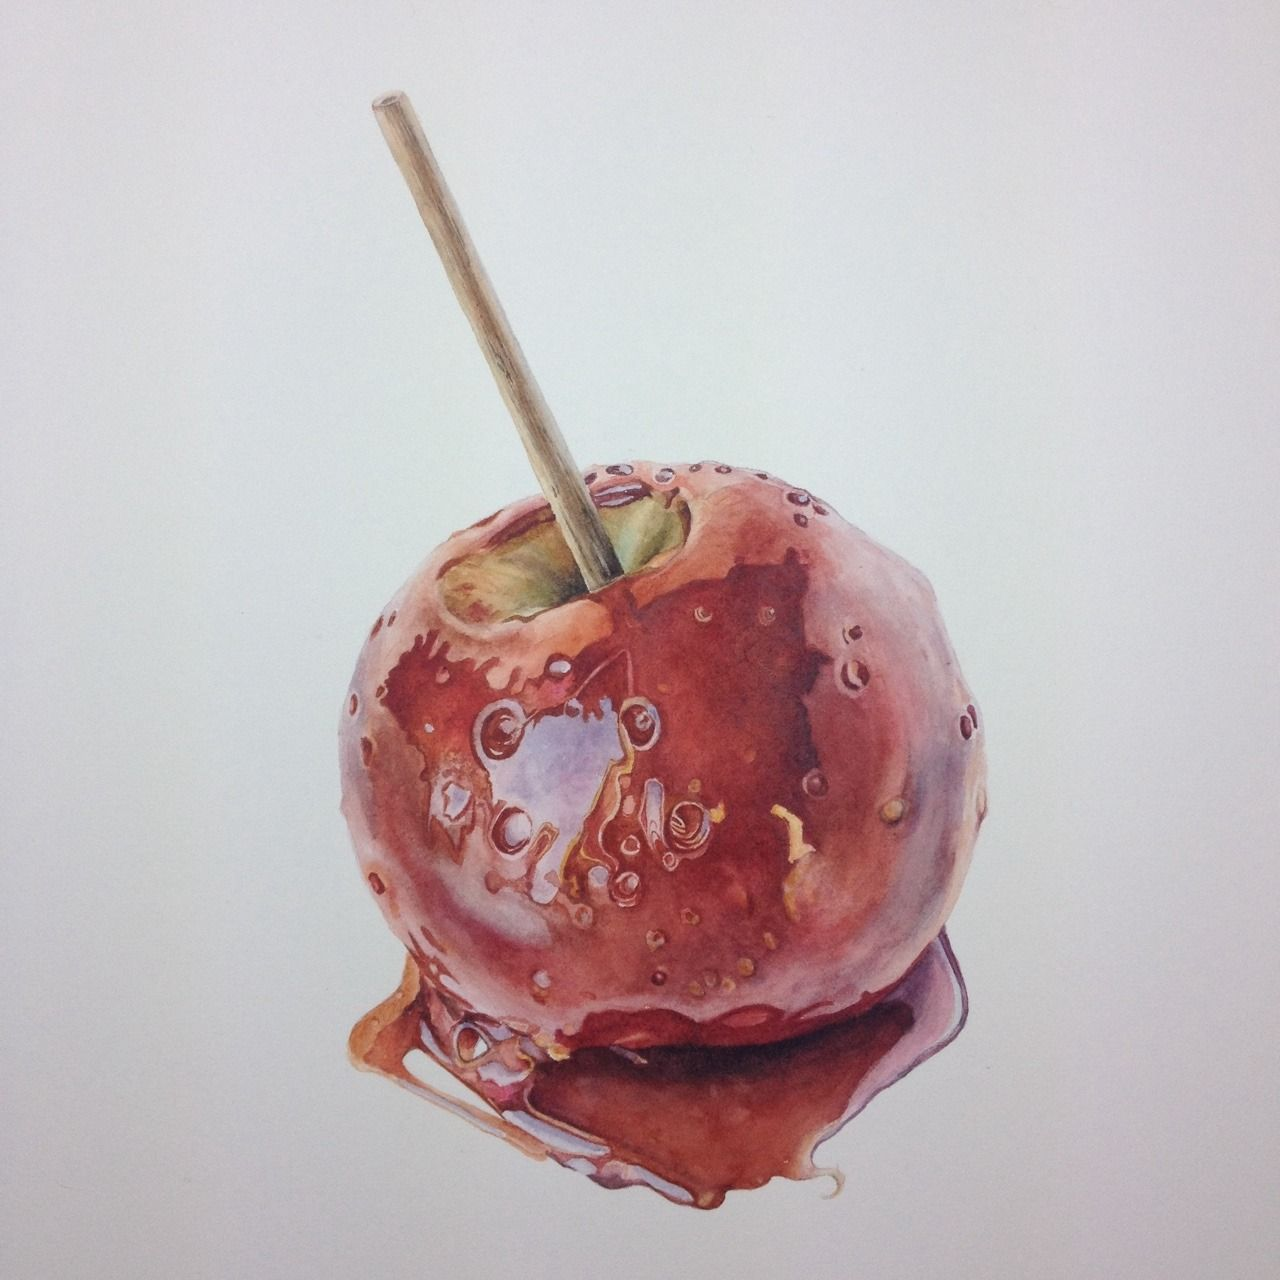 Toffee Apple Commission Finished On To Pastures New Apple Painting Chocolate Apples Apple Sketch